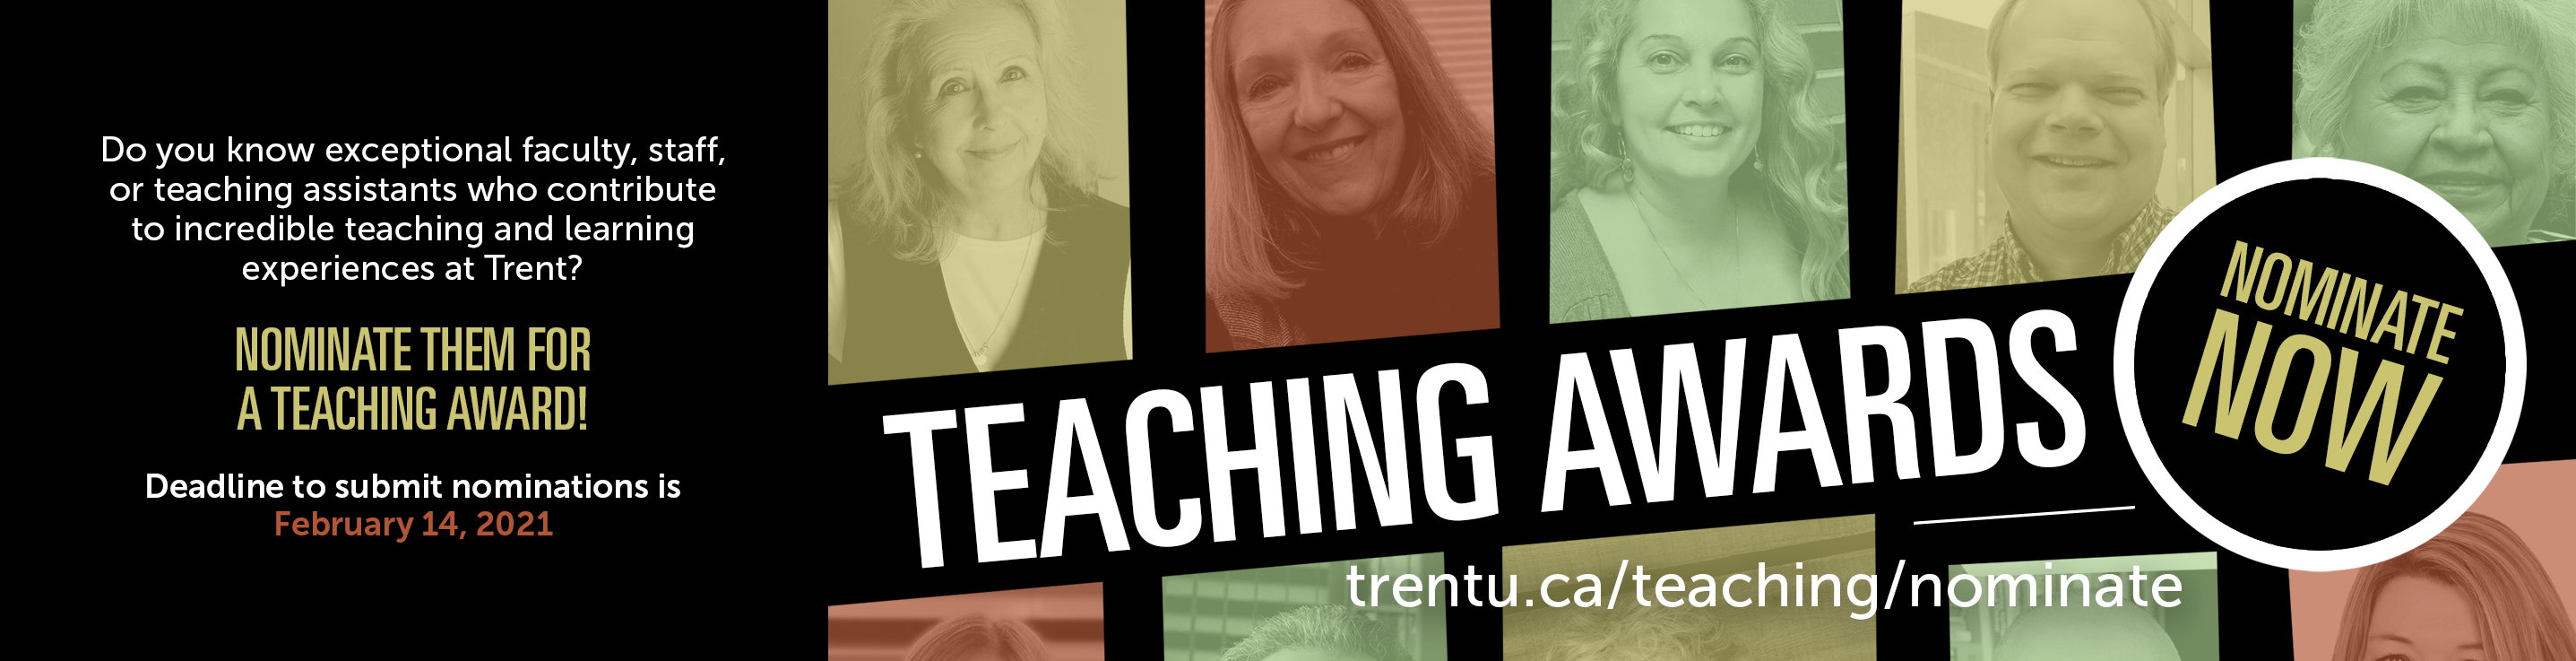 Teaching Awards by The Centre for Teaching and Learning at Trent